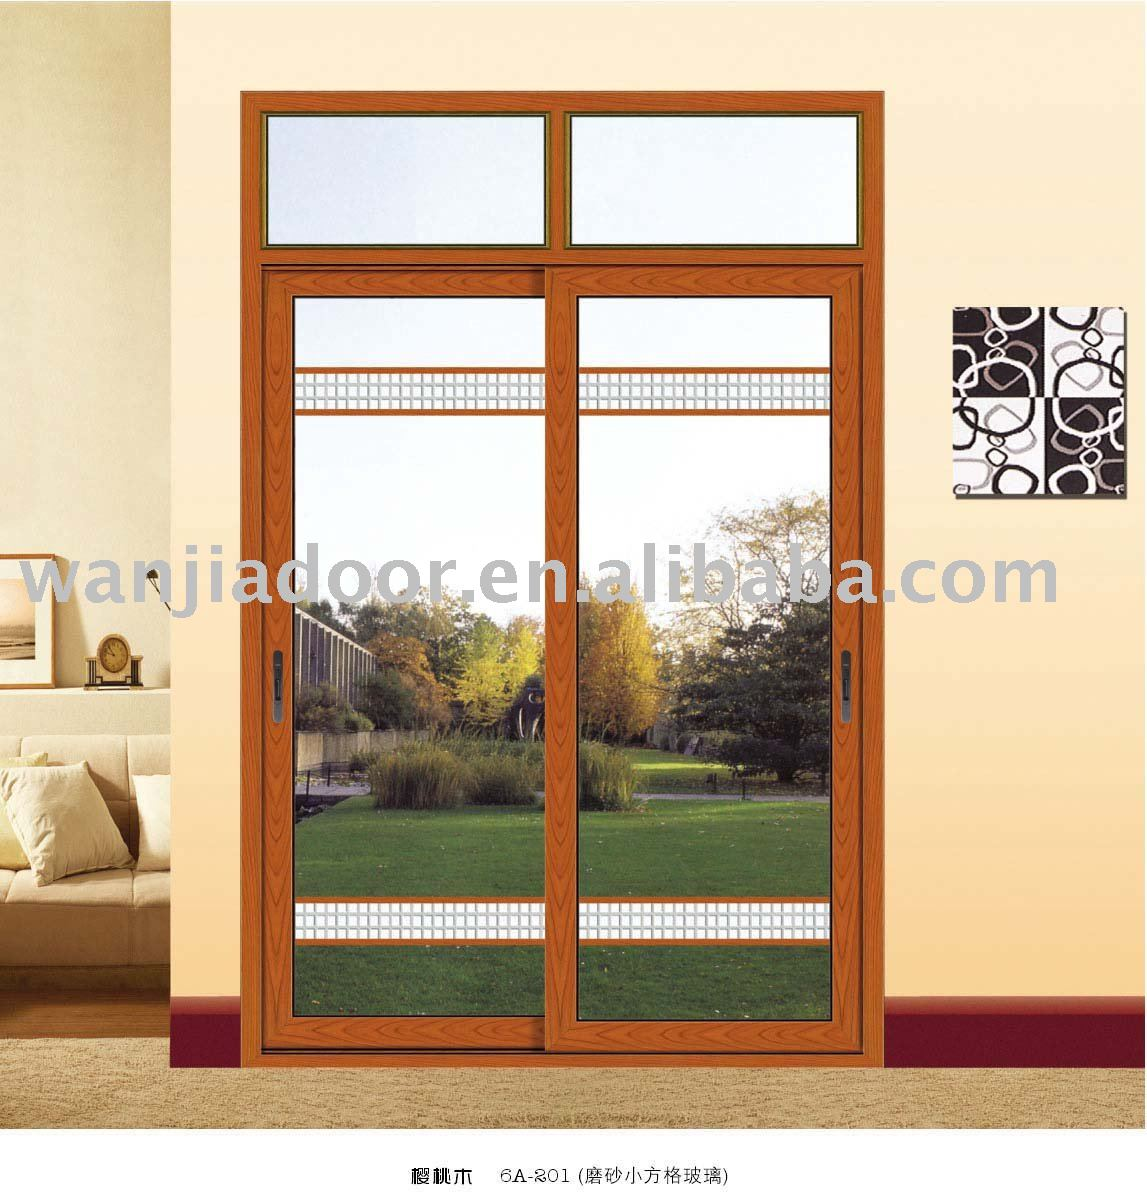 Aluminum doors design room 4 interiors for Aluminium glass windows and doors